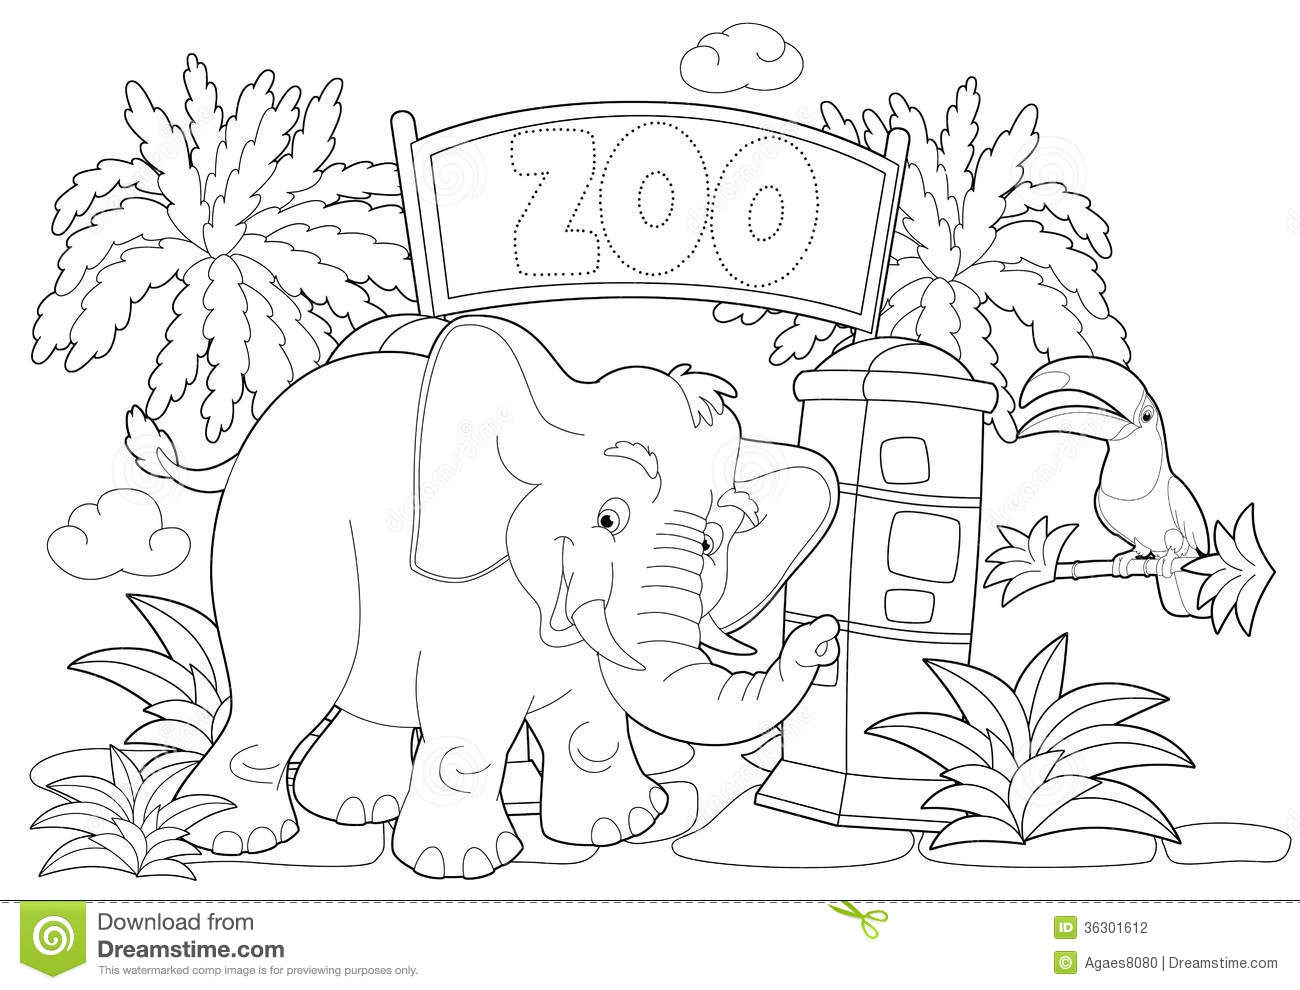 Z For Zoo Colouring Pages page 2